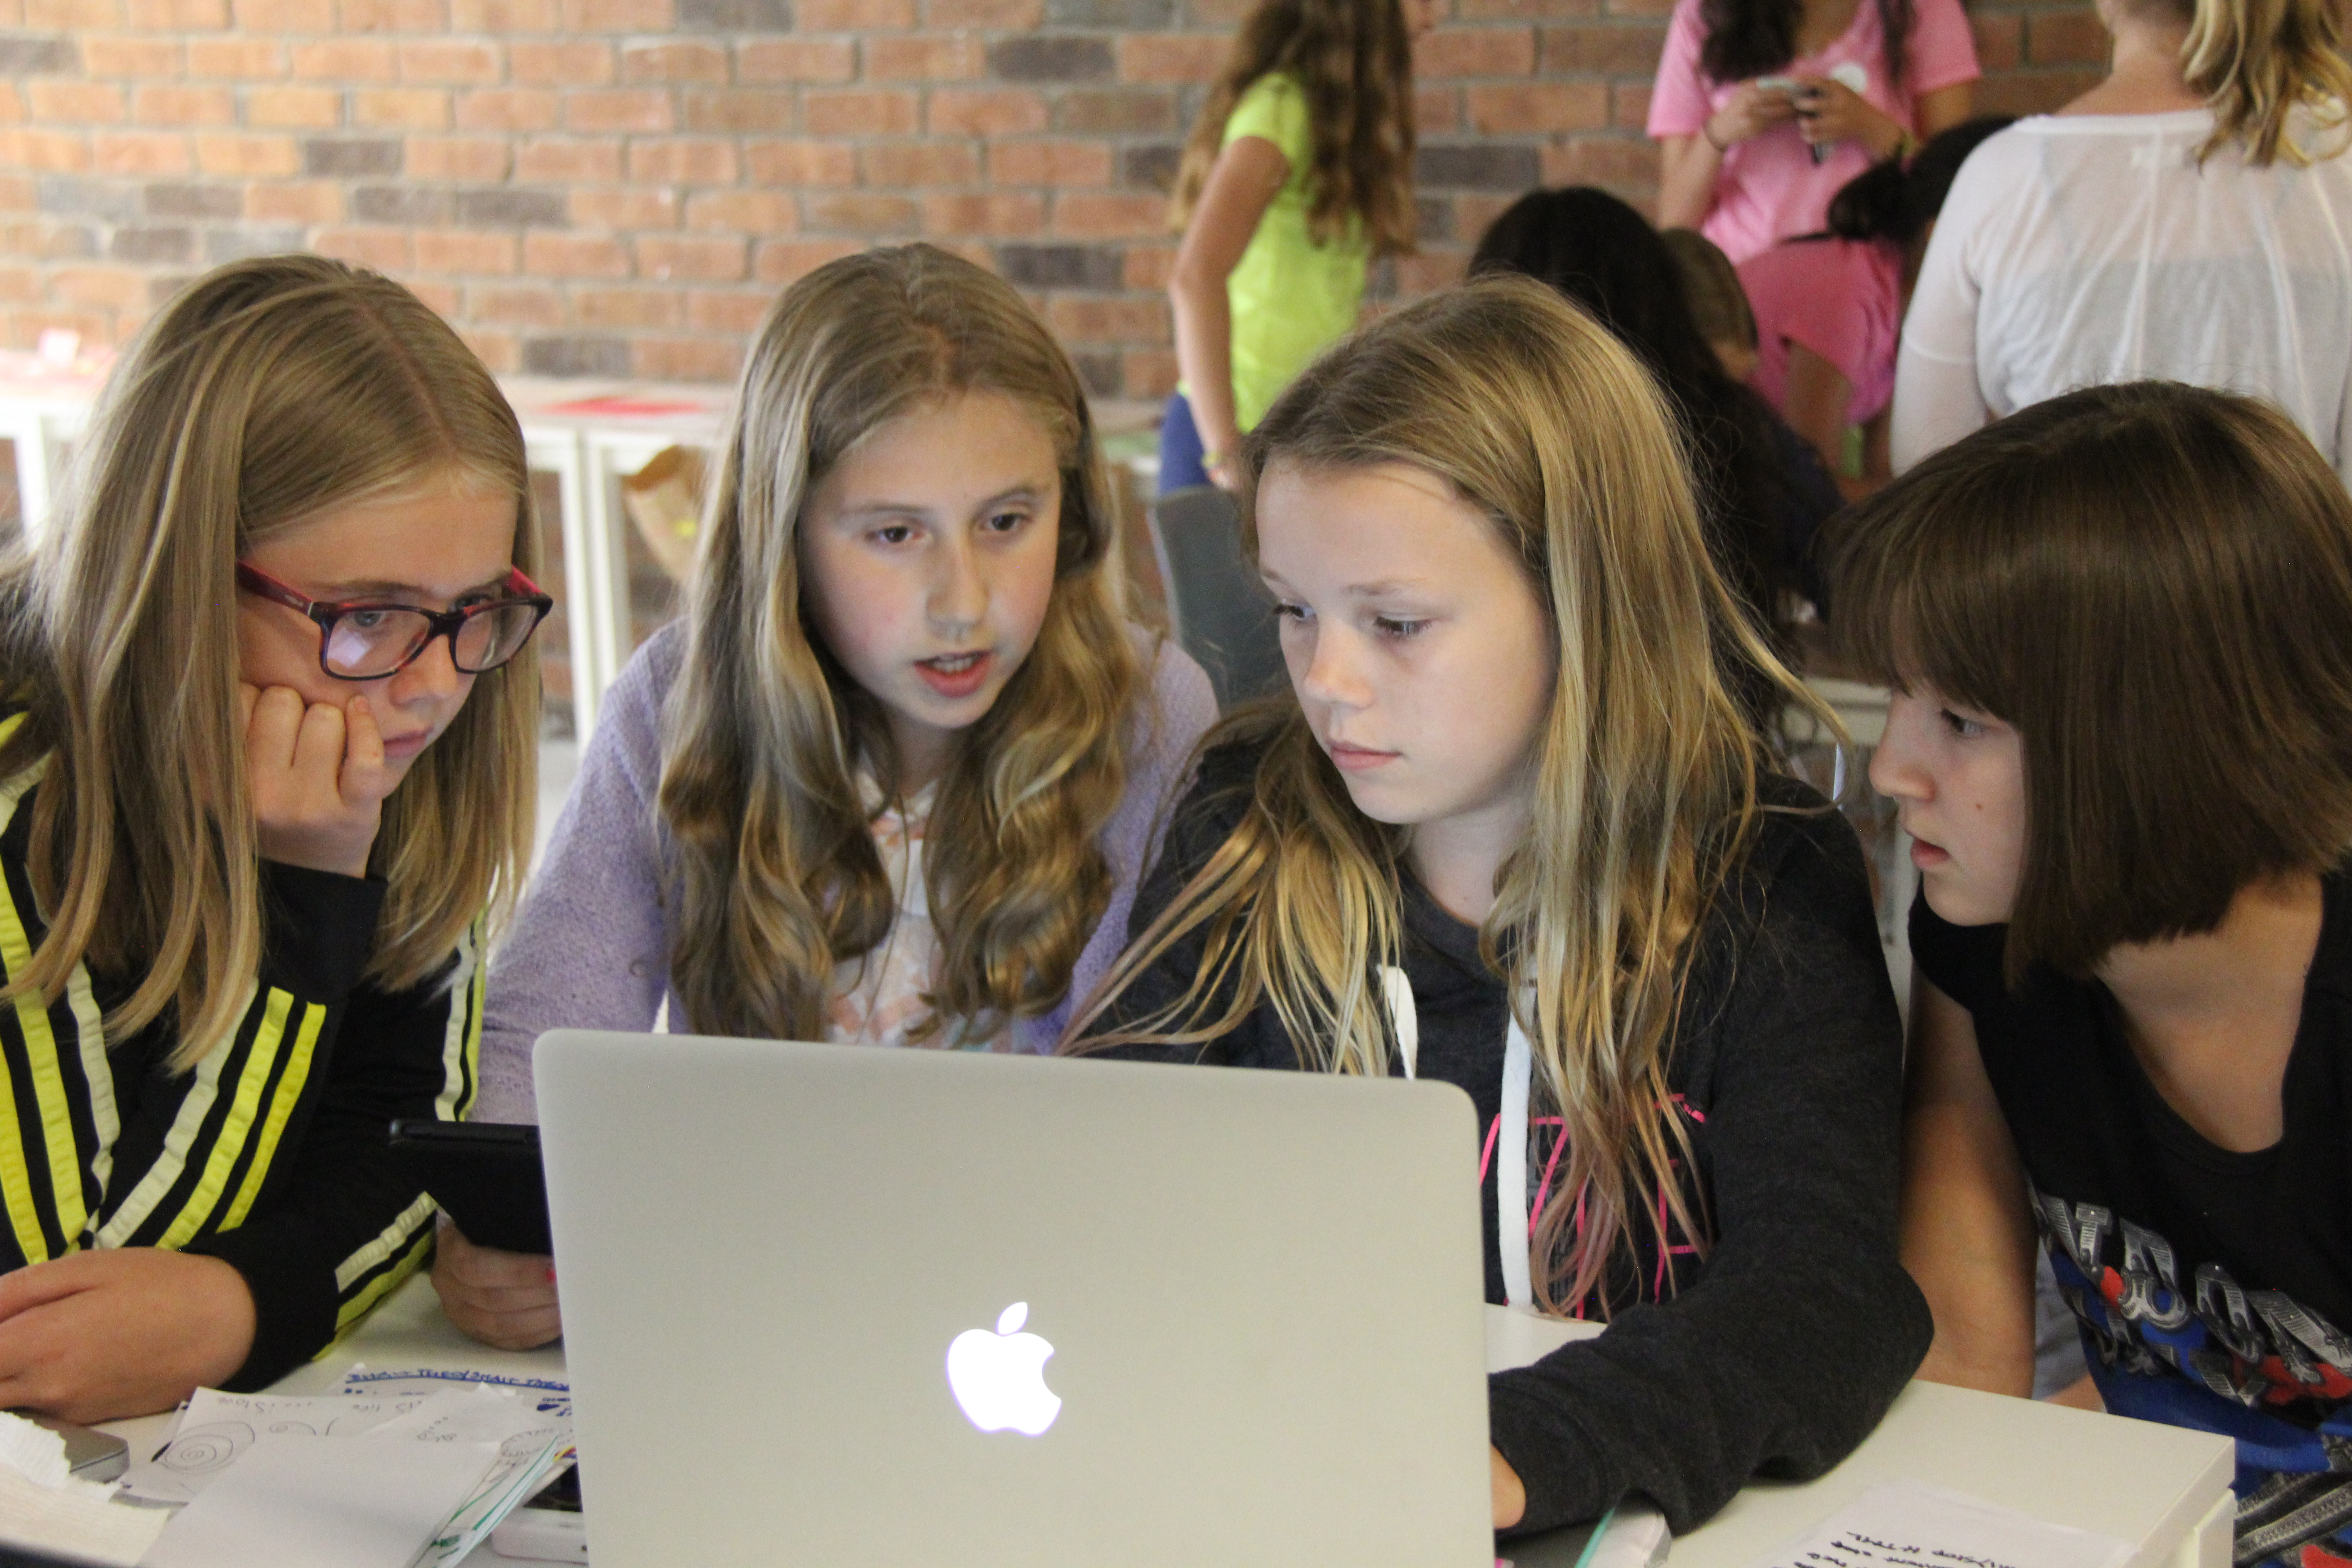 Bring Girls Learning Code to your community in Toronto or the GTA!